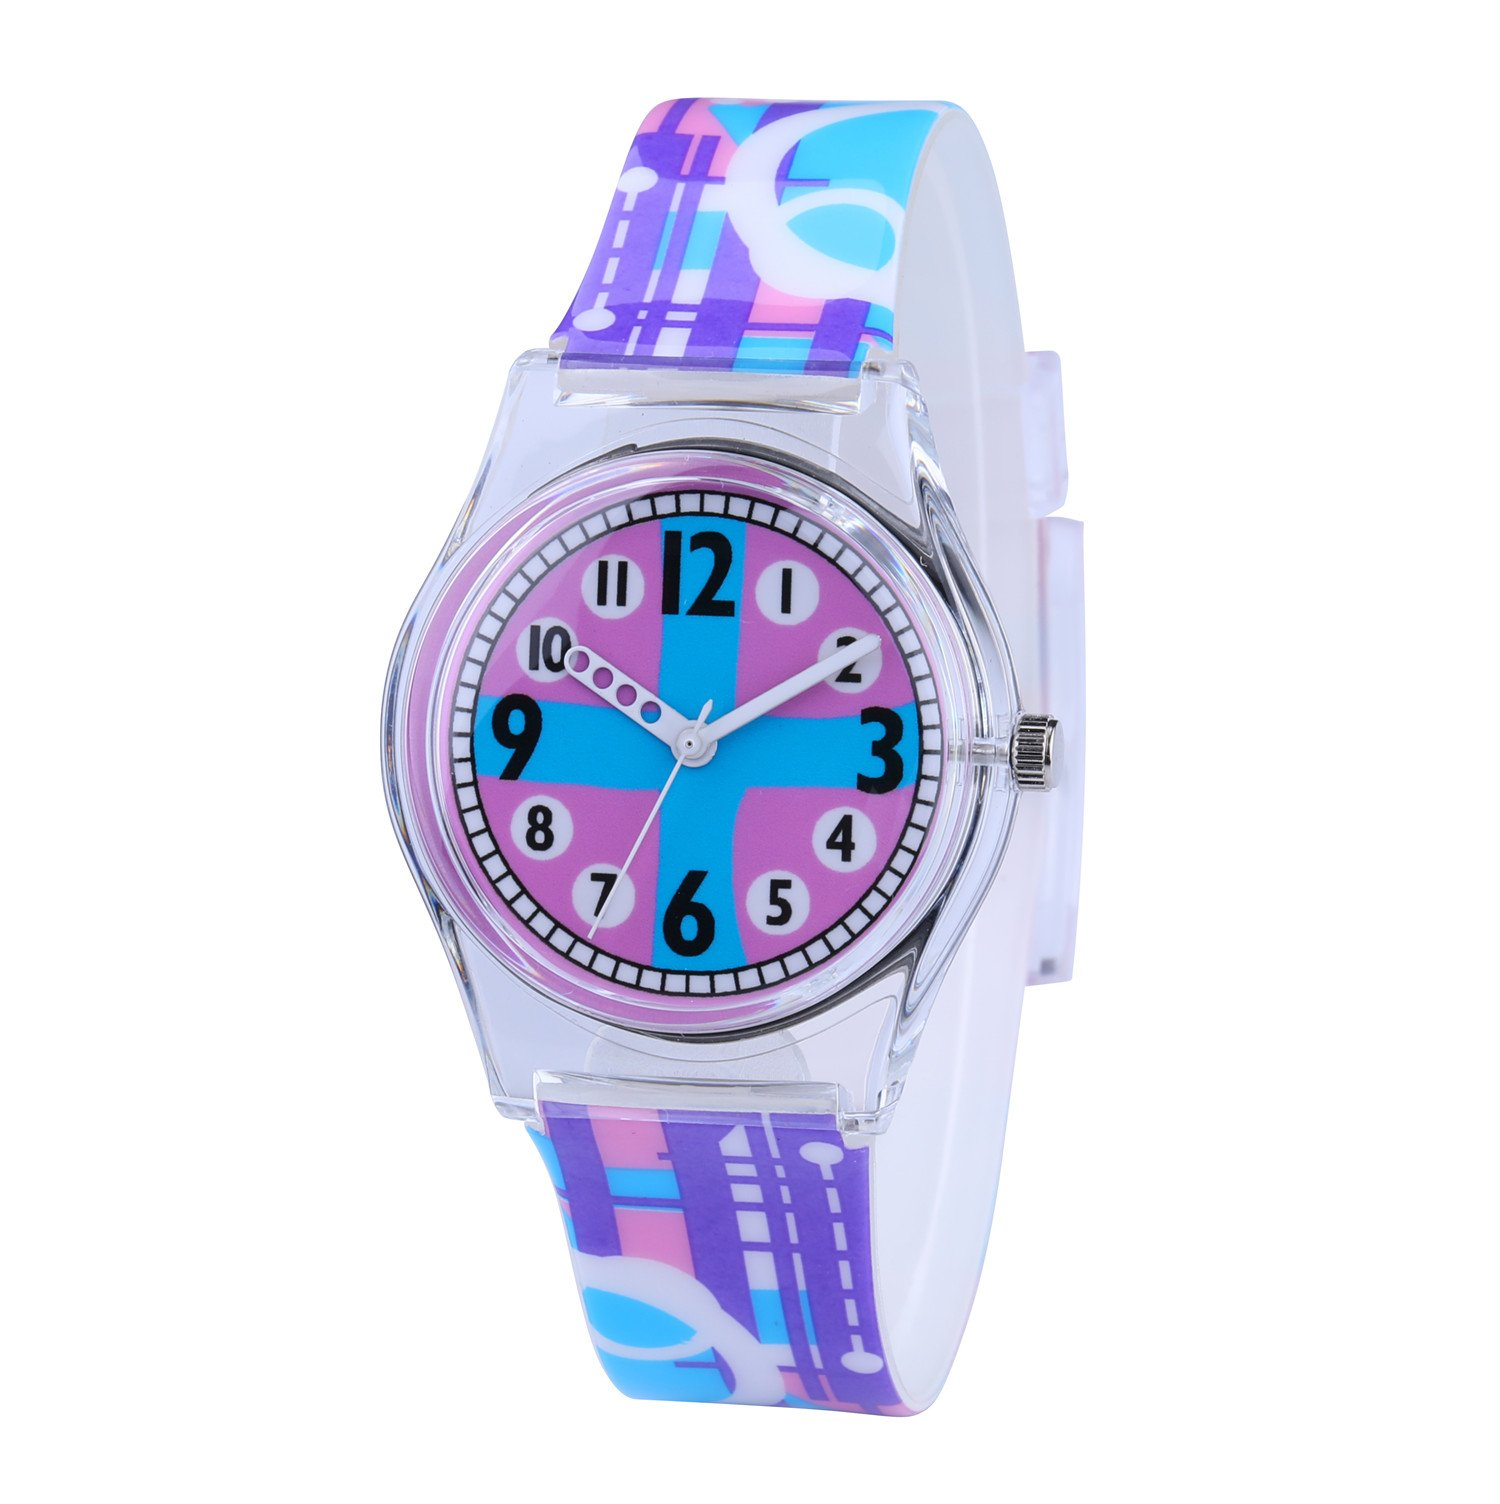 Jewtme Cute Analog Quartz watch Stylish Style With Colorful Band for Teenagers Young Girls Students Watches Gifts -Cross